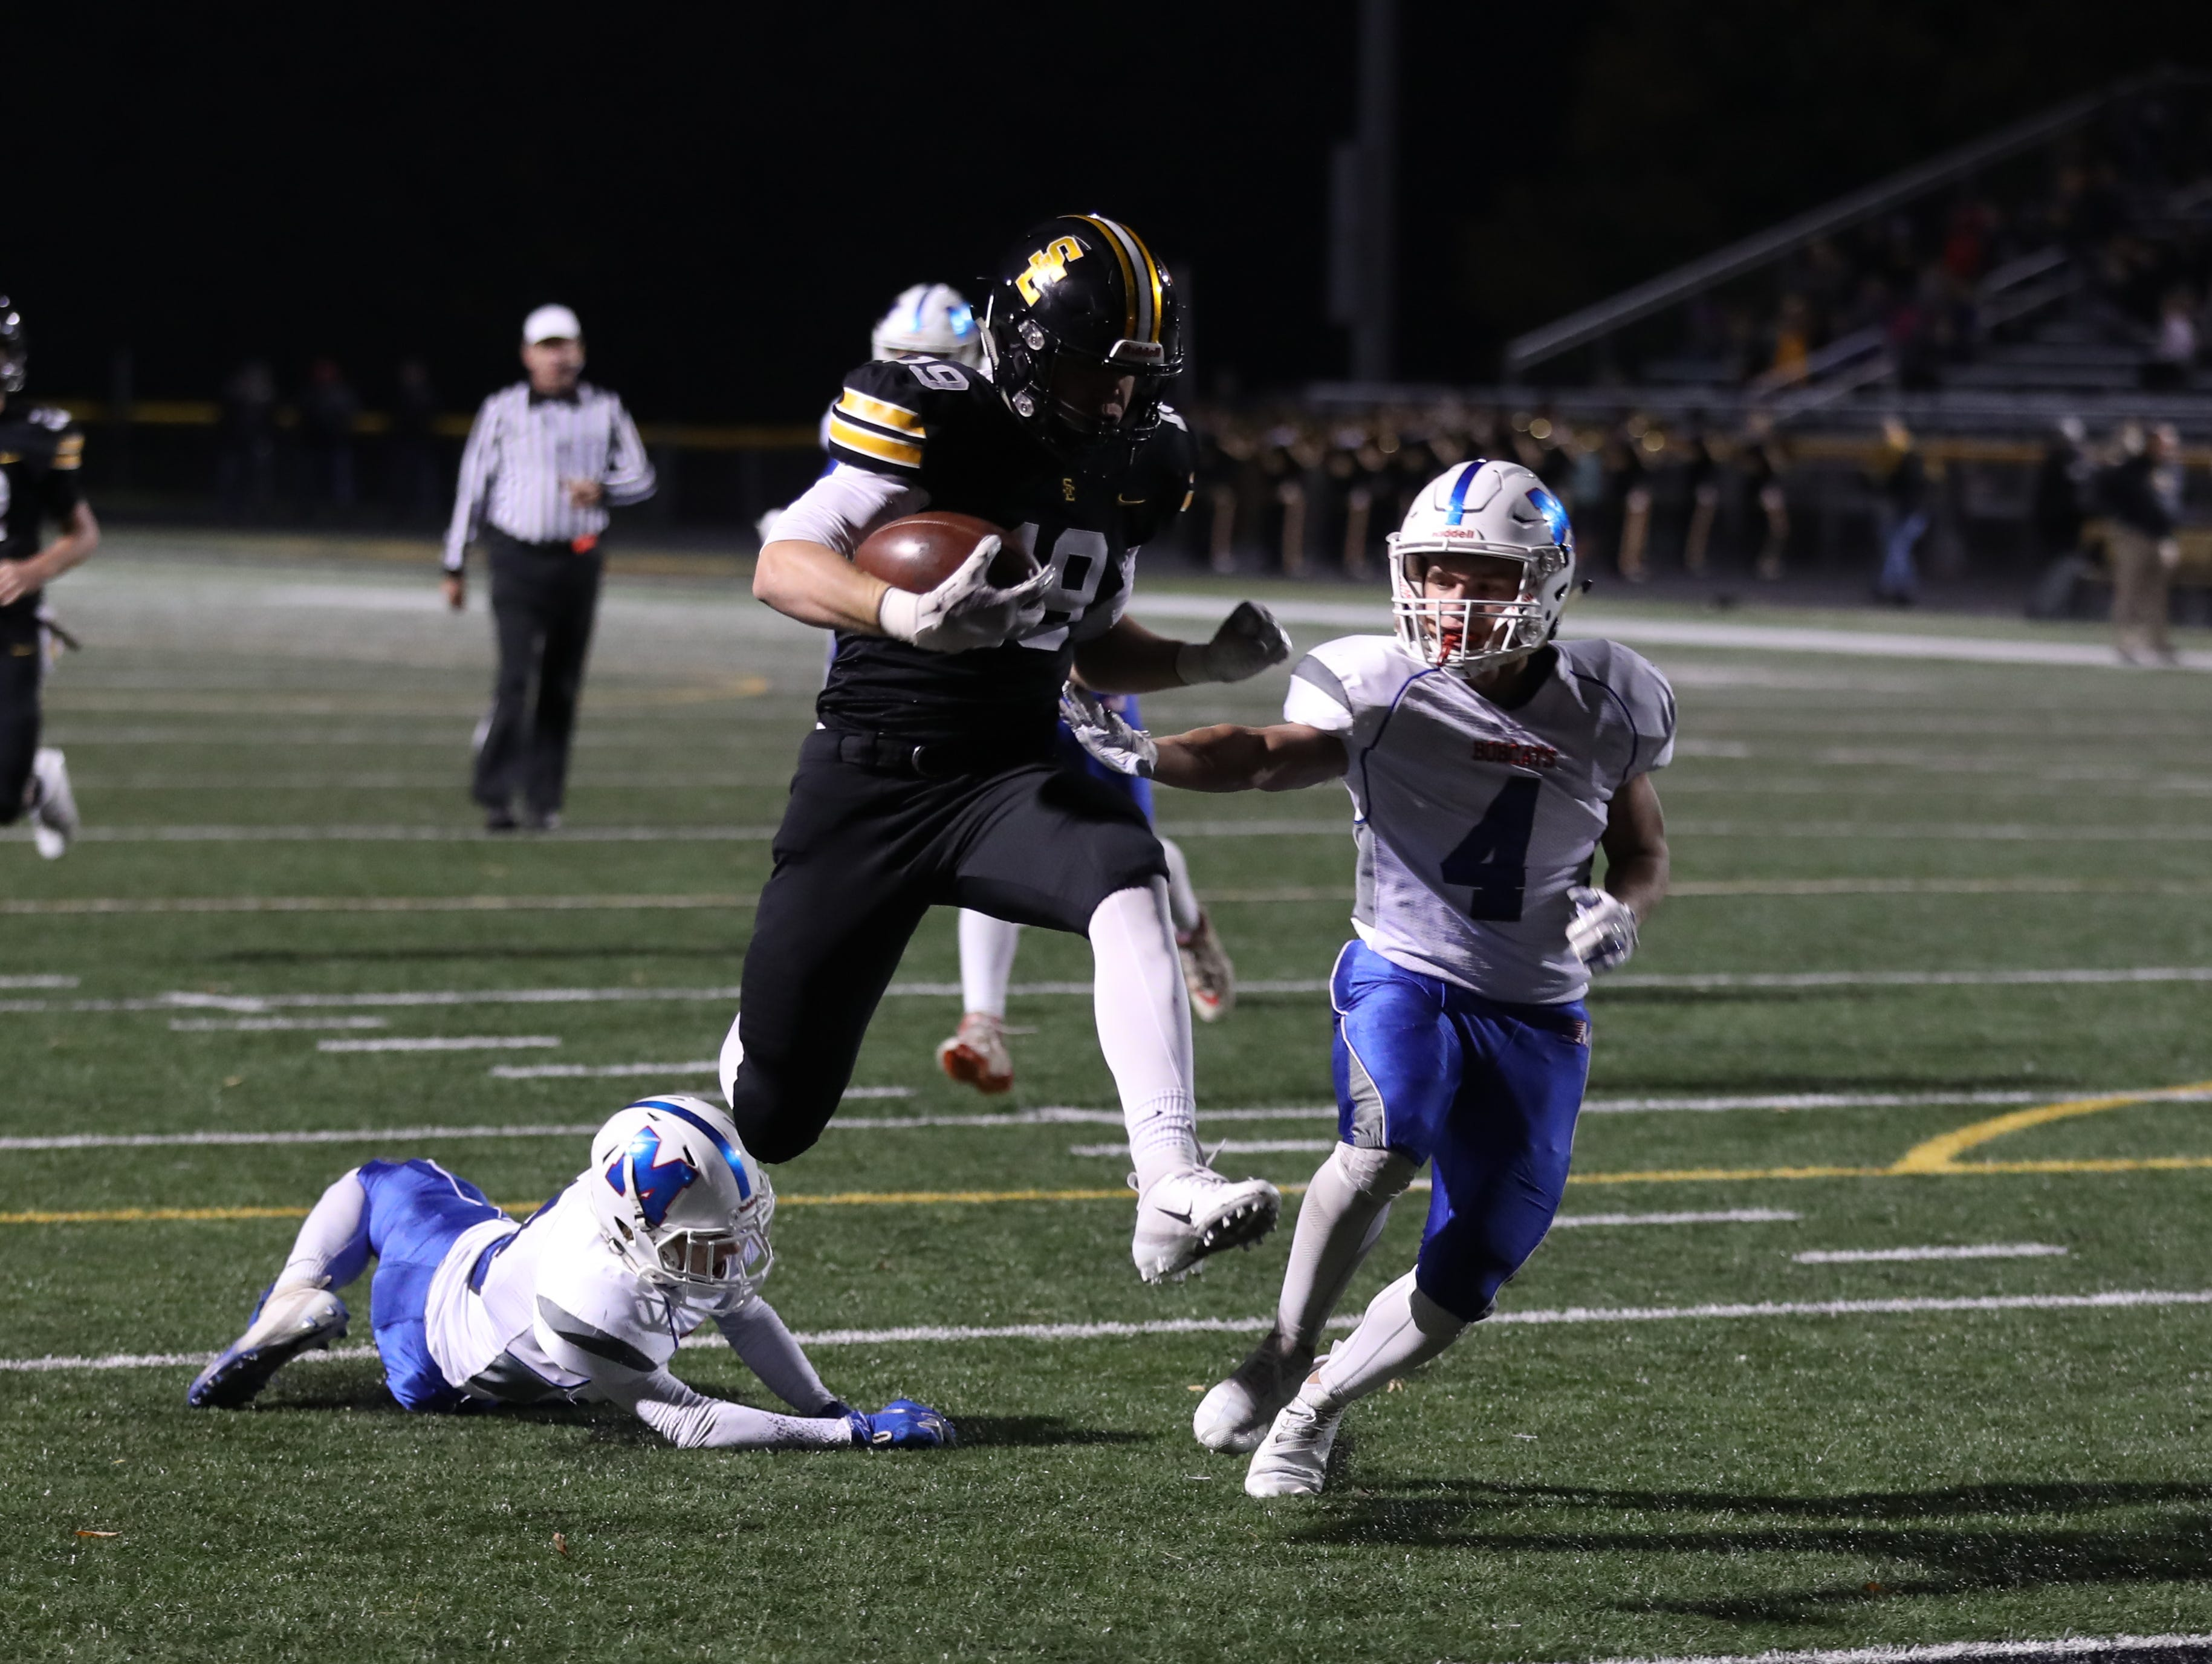 Southeast Polk Rams Jace Christenson (19) jumps into the end zone for a TD against the Marshalltown Bobcats at SE Polk Stadium. The Rams beat the Bobcats 56 to 7.